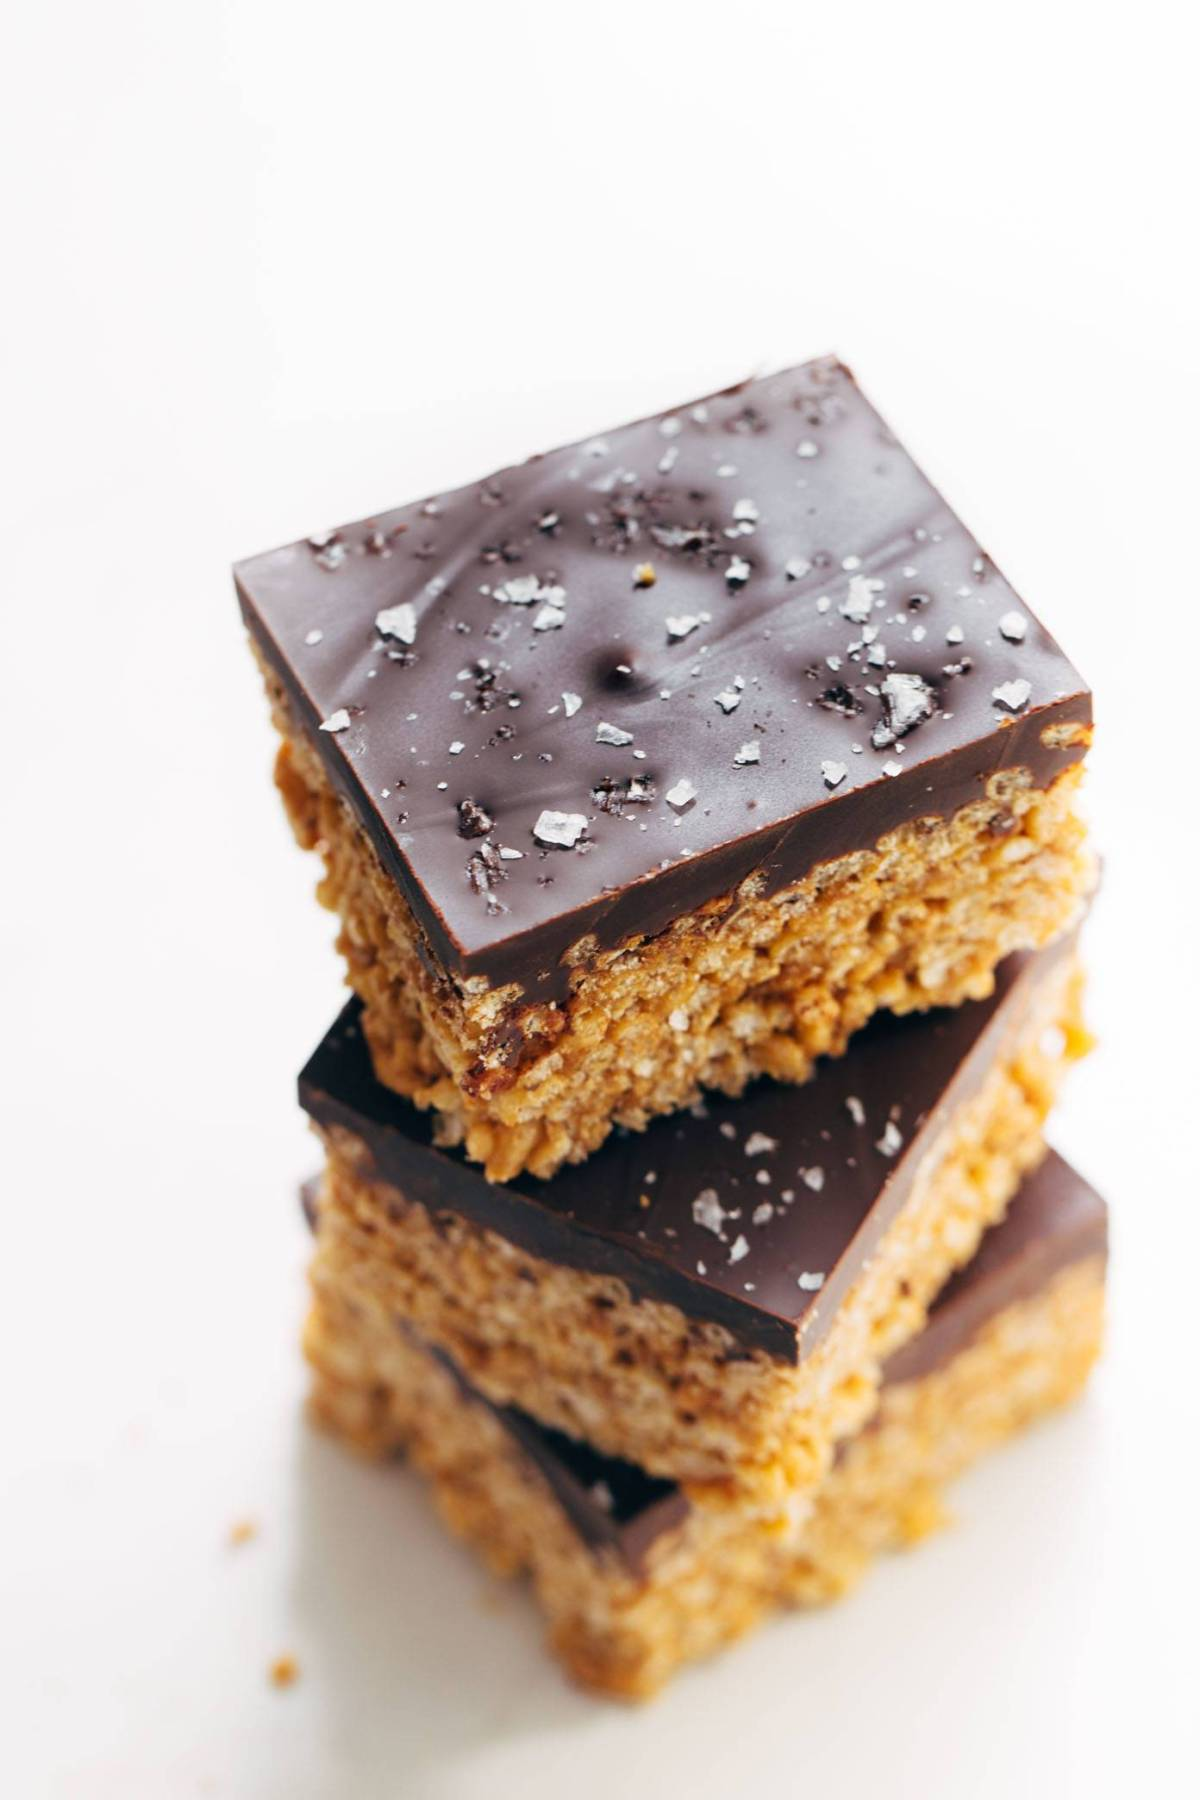 Chocolate-covered peanut butter rice krispie bars stacked on each other.